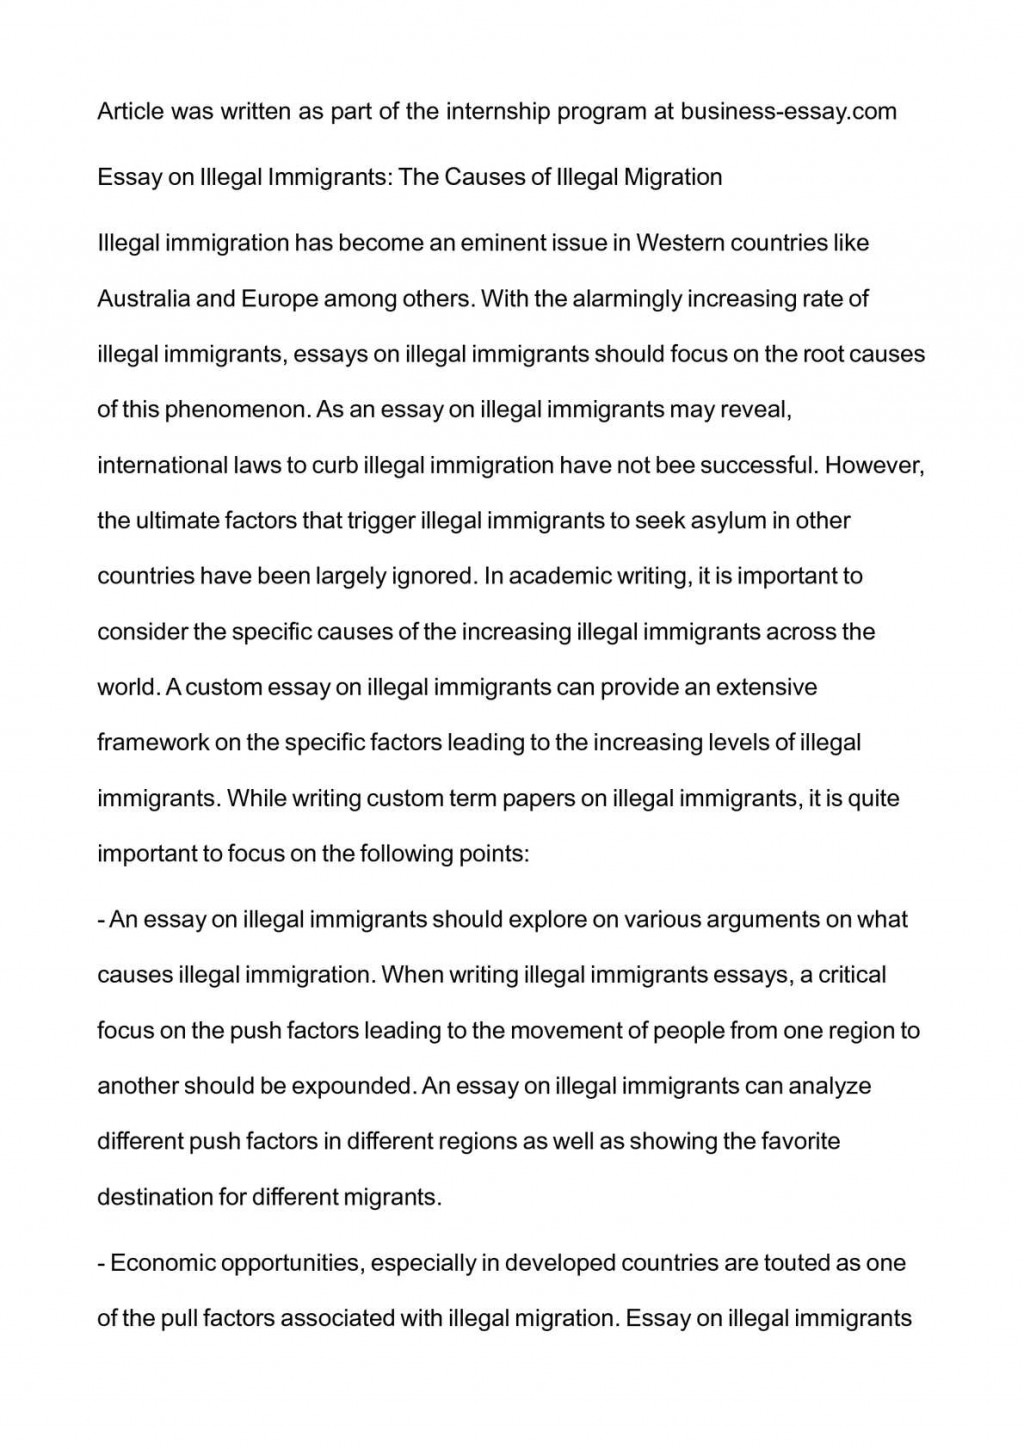 001 Essay Example Illegal Immigration Argumentative On P Against Thesis Pro Outline Stunning Title Persuasive Topics Large